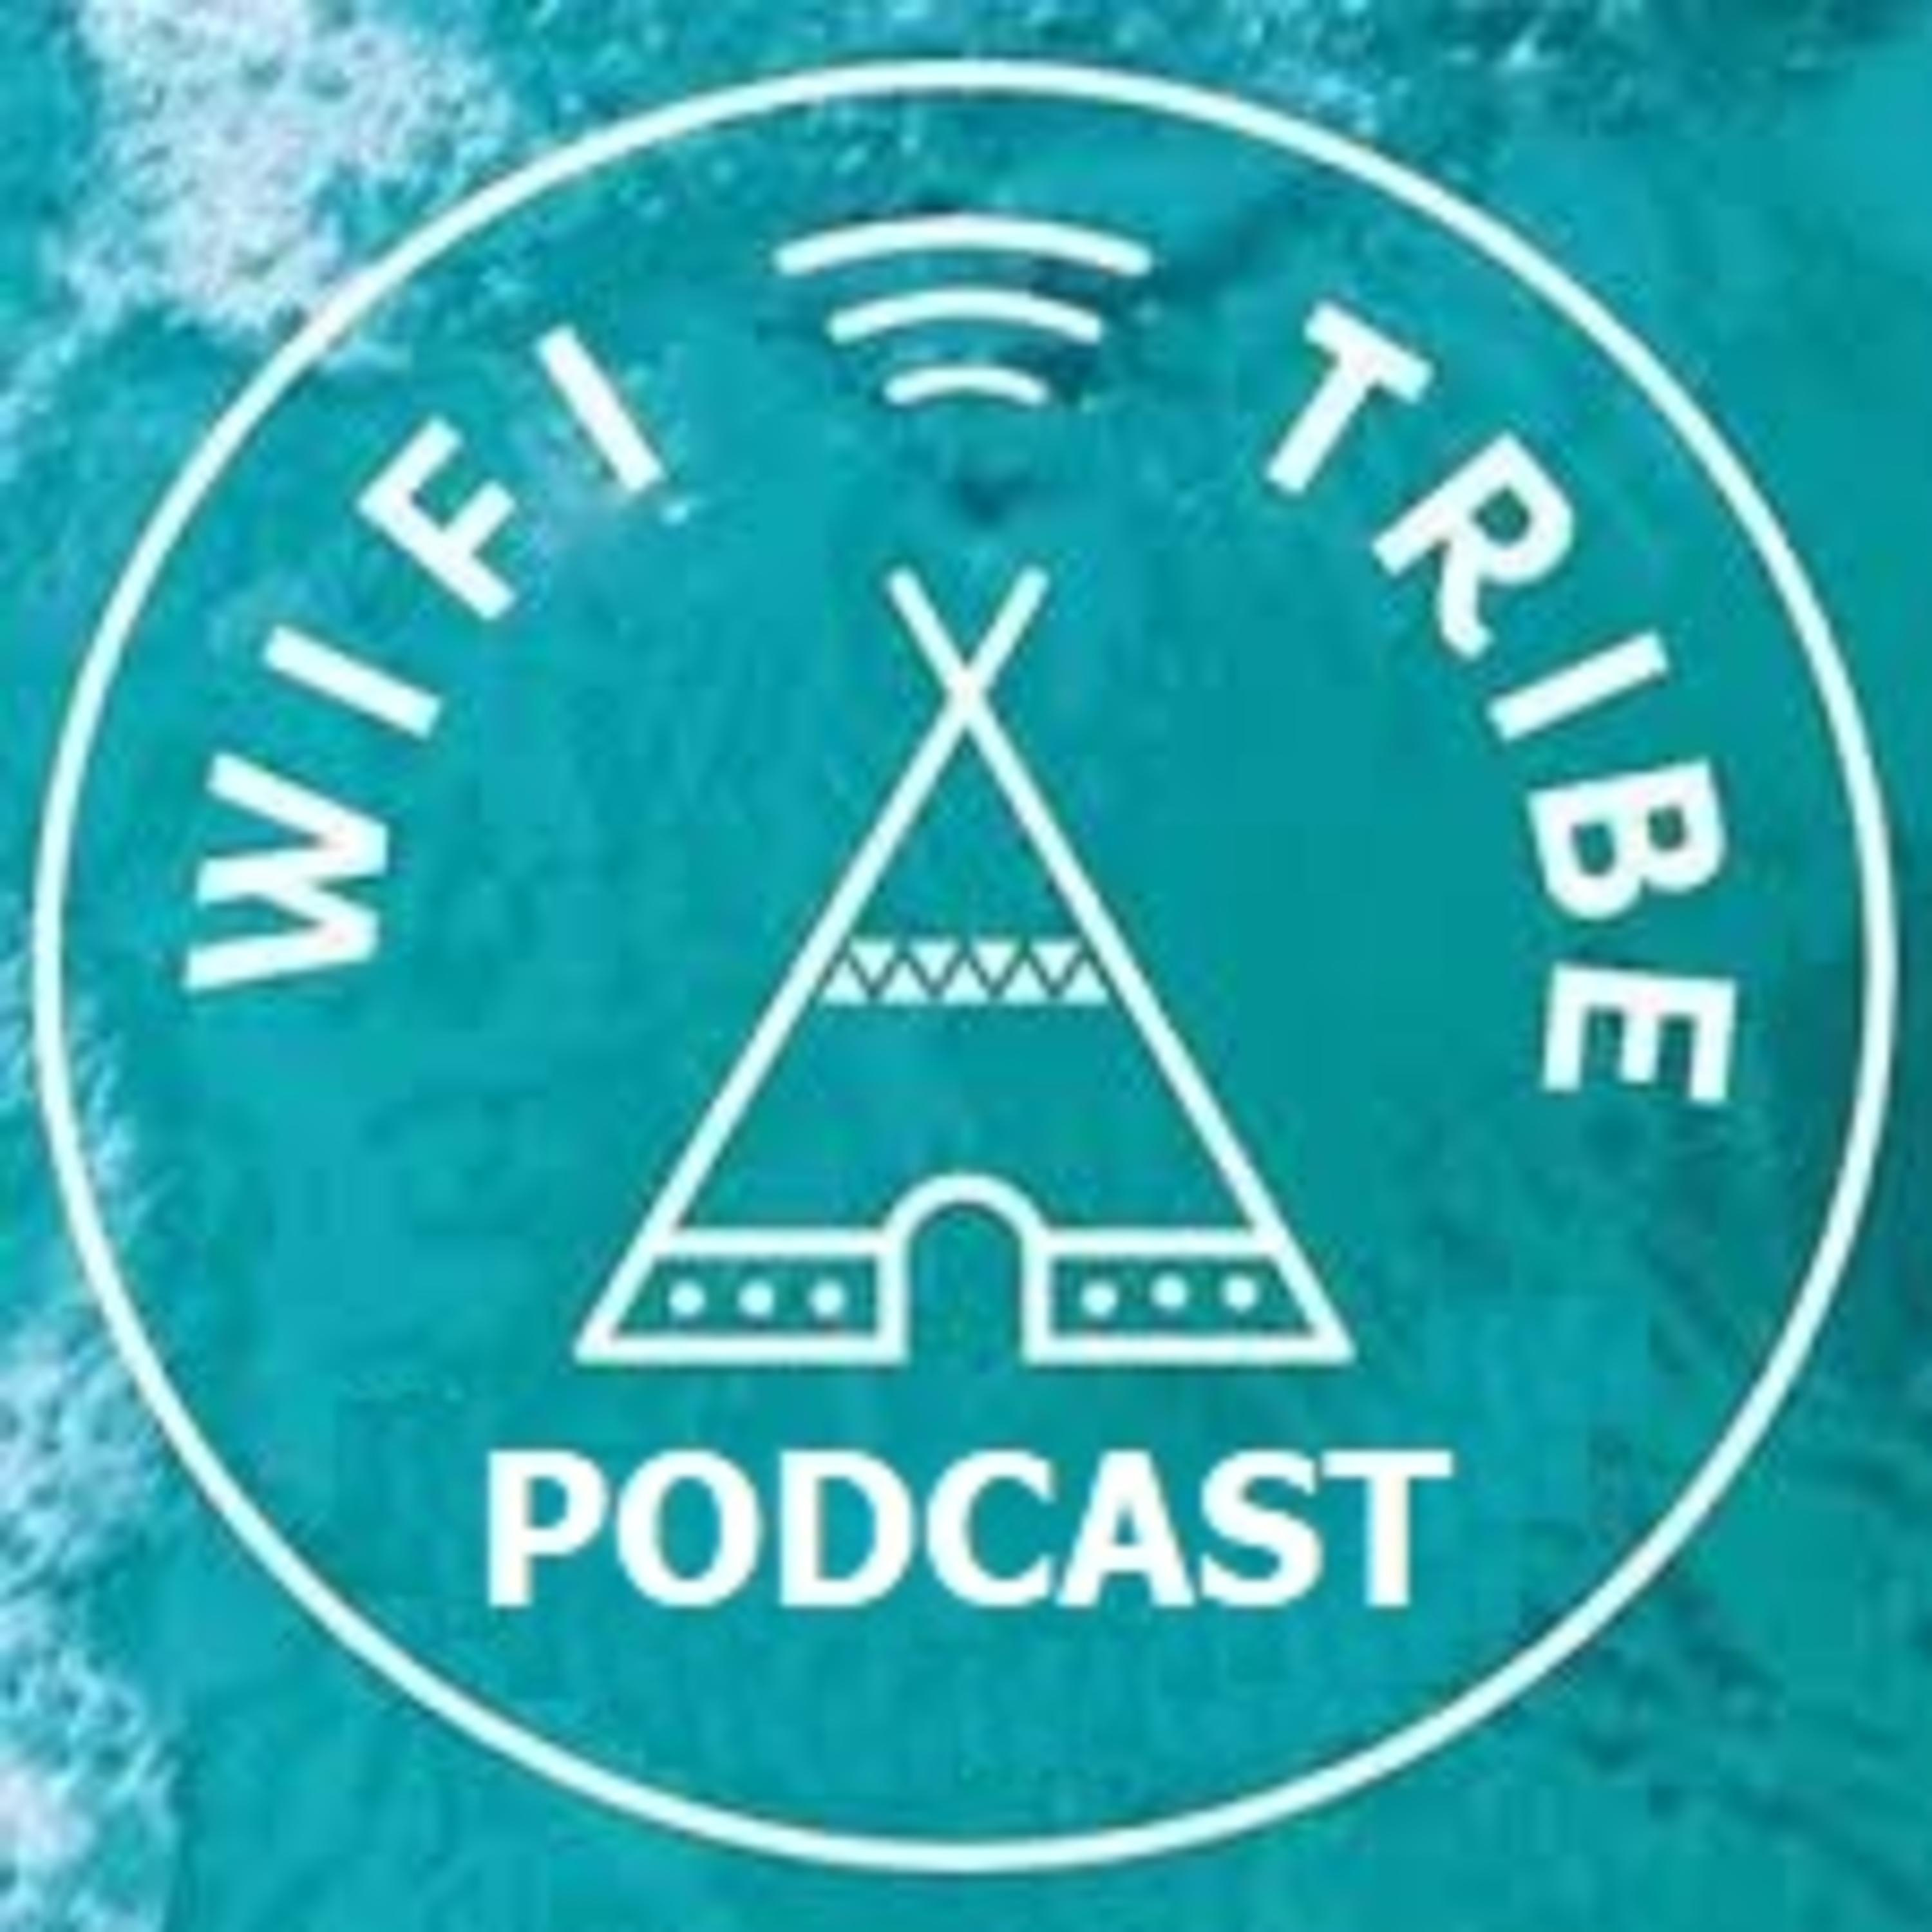 S4:E5 - Diversity and Inclusion within the Digital Nomad Community (With Sherif Fouad)